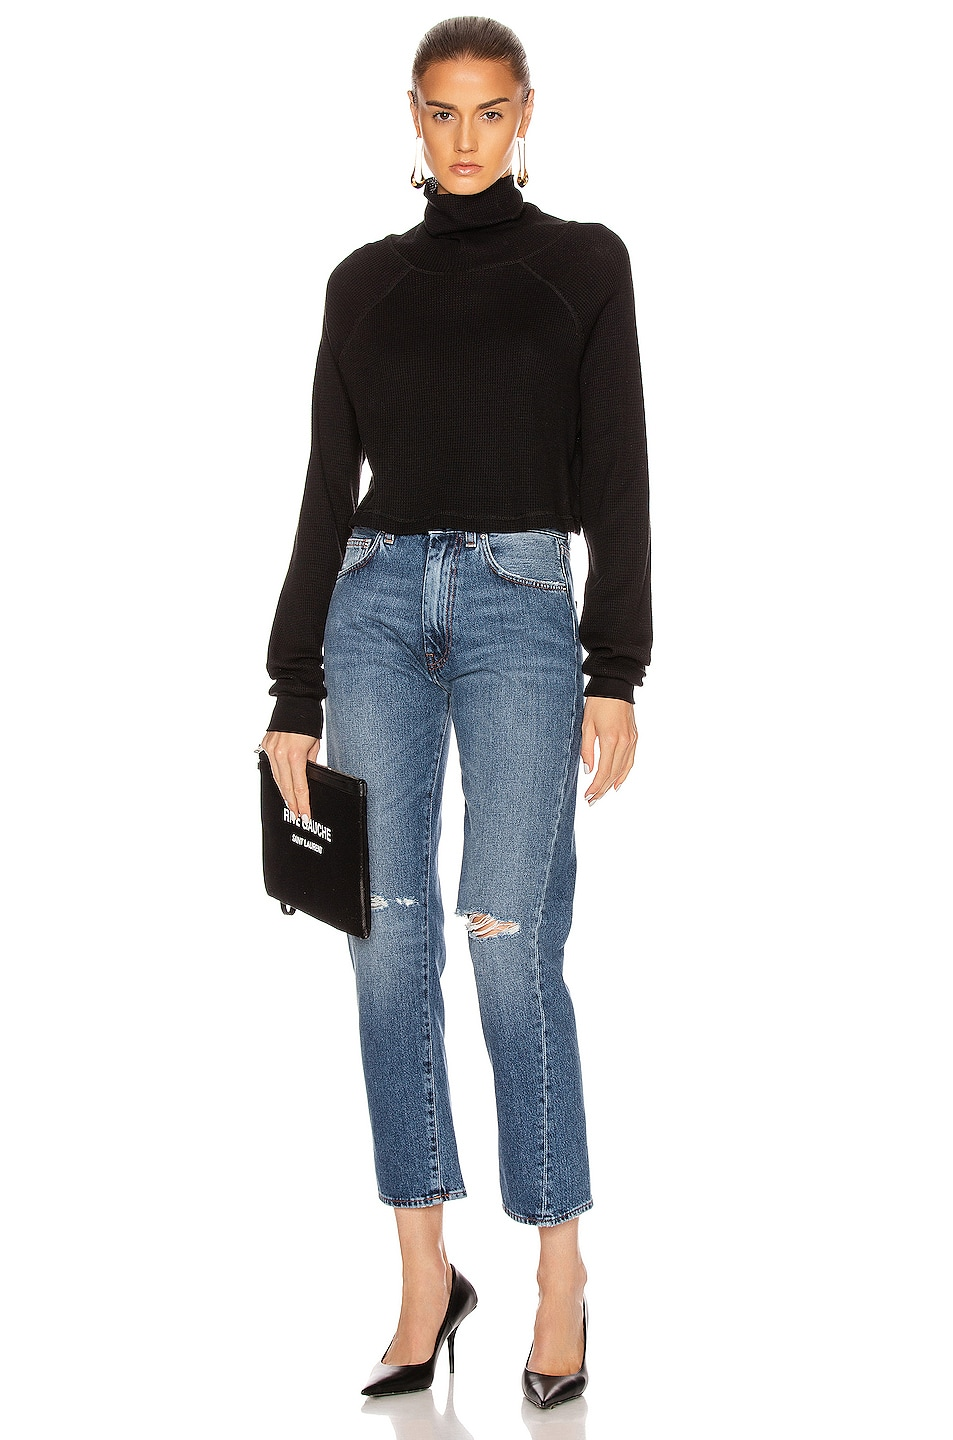 Image 4 of The Range Stark Waffle Knit Cropped Turtleneck in Jet Black